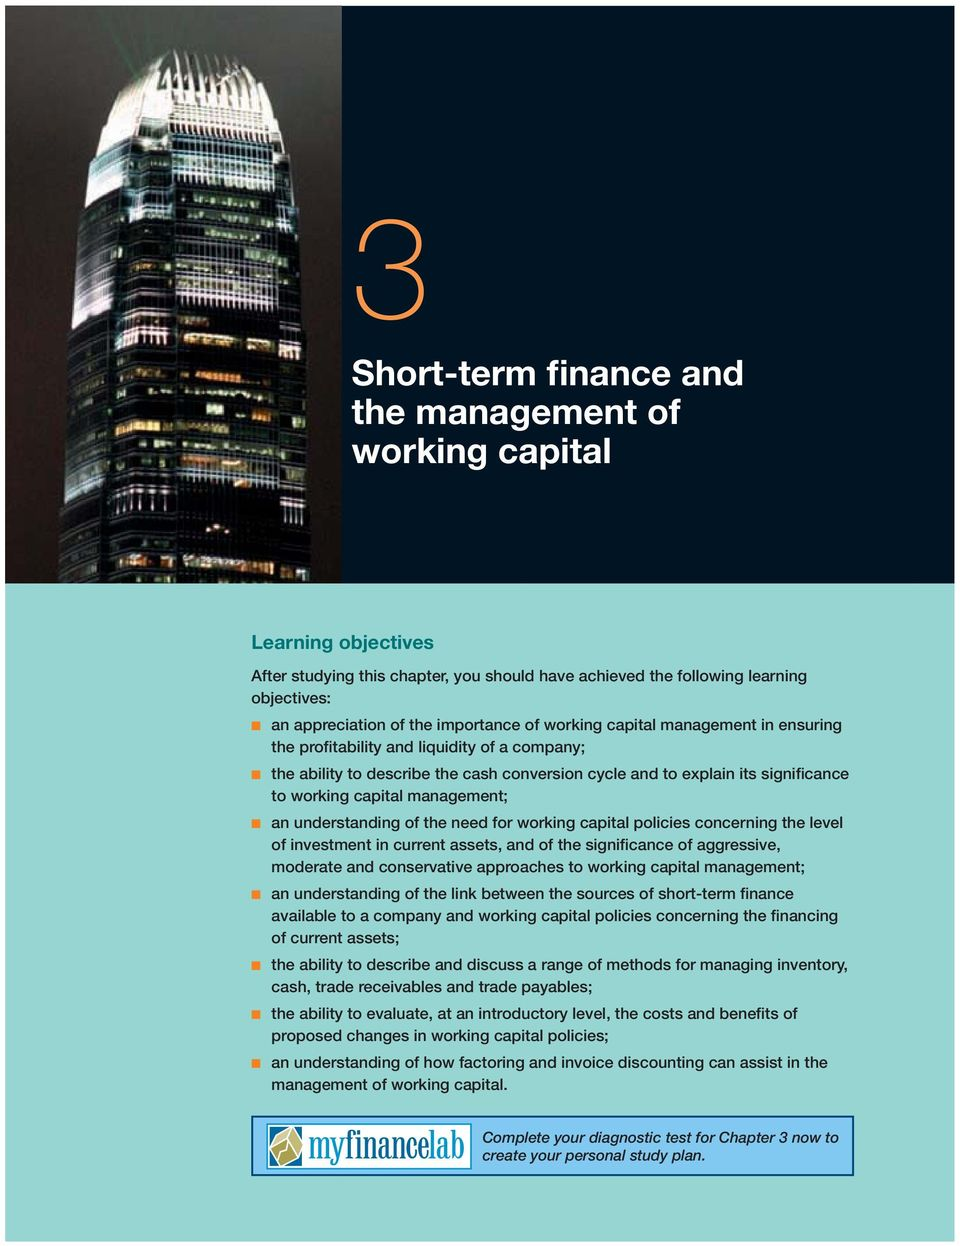 management; an understanding of the need for working capital policies concerning the level of investment in current assets, and of the significance of aggressive, moderate and conservative approaches